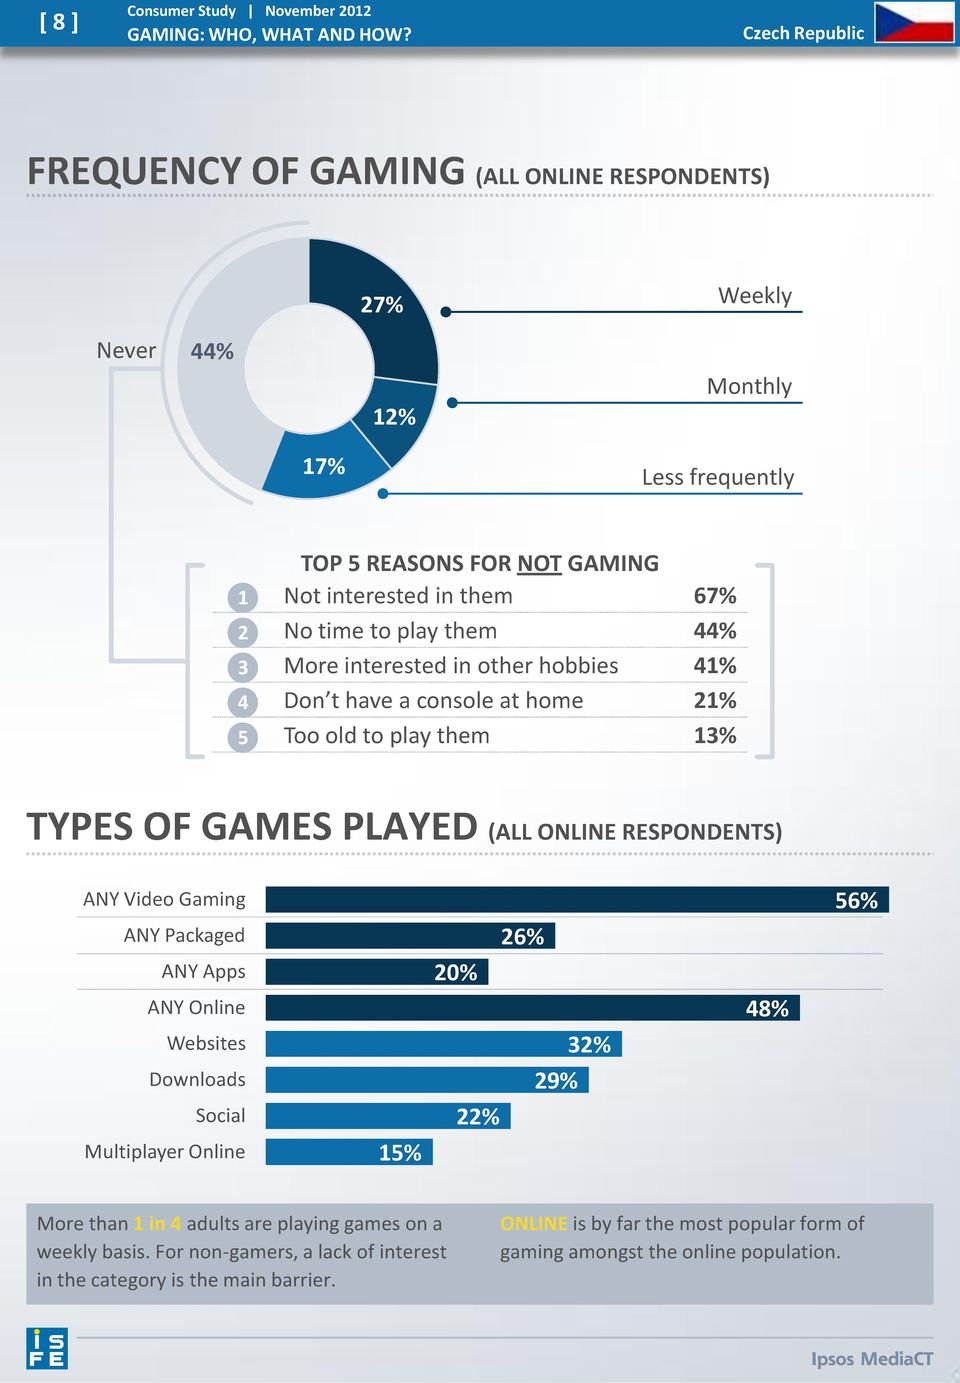 them 44% 3 More interested in other hobbies 41% 4 Don t have a console at home 21% 5 Too old to play them 13% TYPES OF GAMES PLAYED (ALL ONLINE RESPONDENTS) ANY Video Gaming